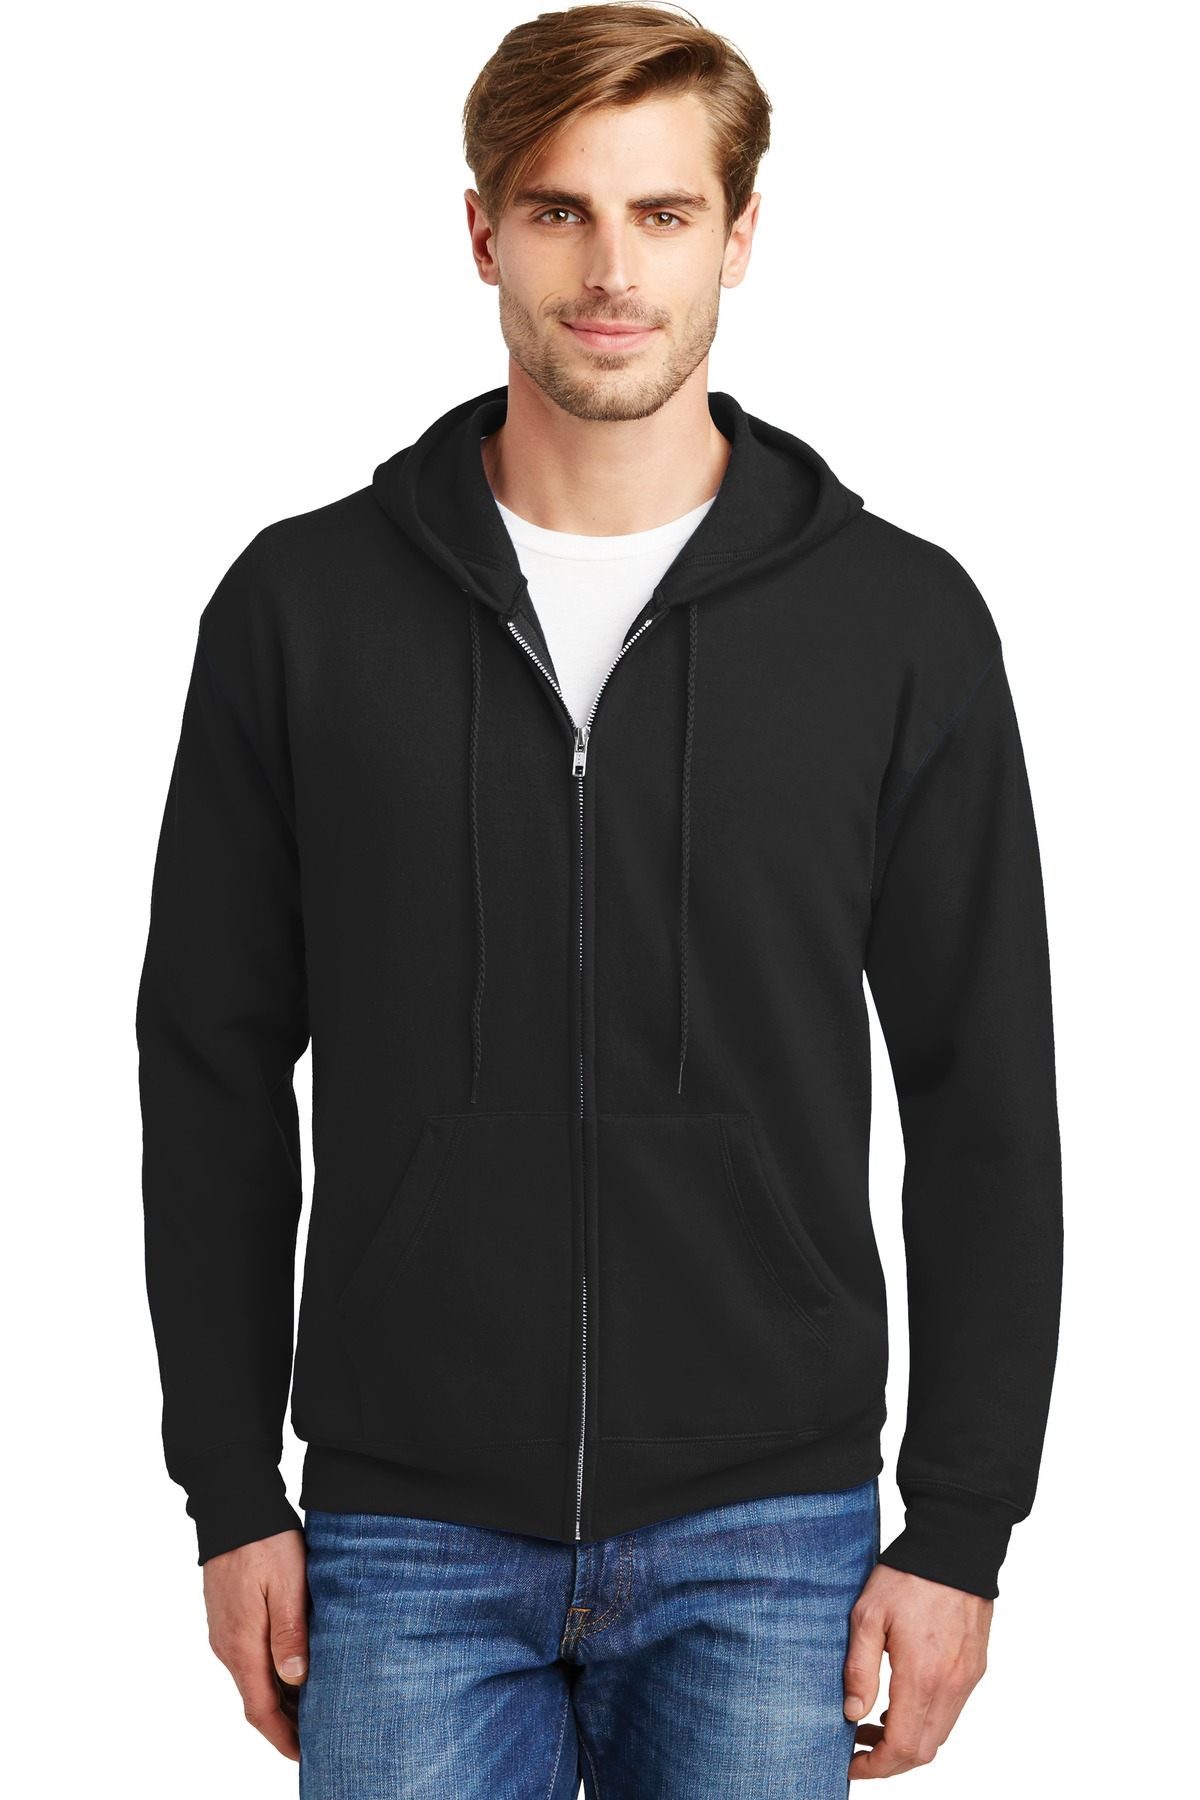 Hanes ®  - EcoSmart ®  Full-Zip Hooded Sweatshirt. P180 - Black